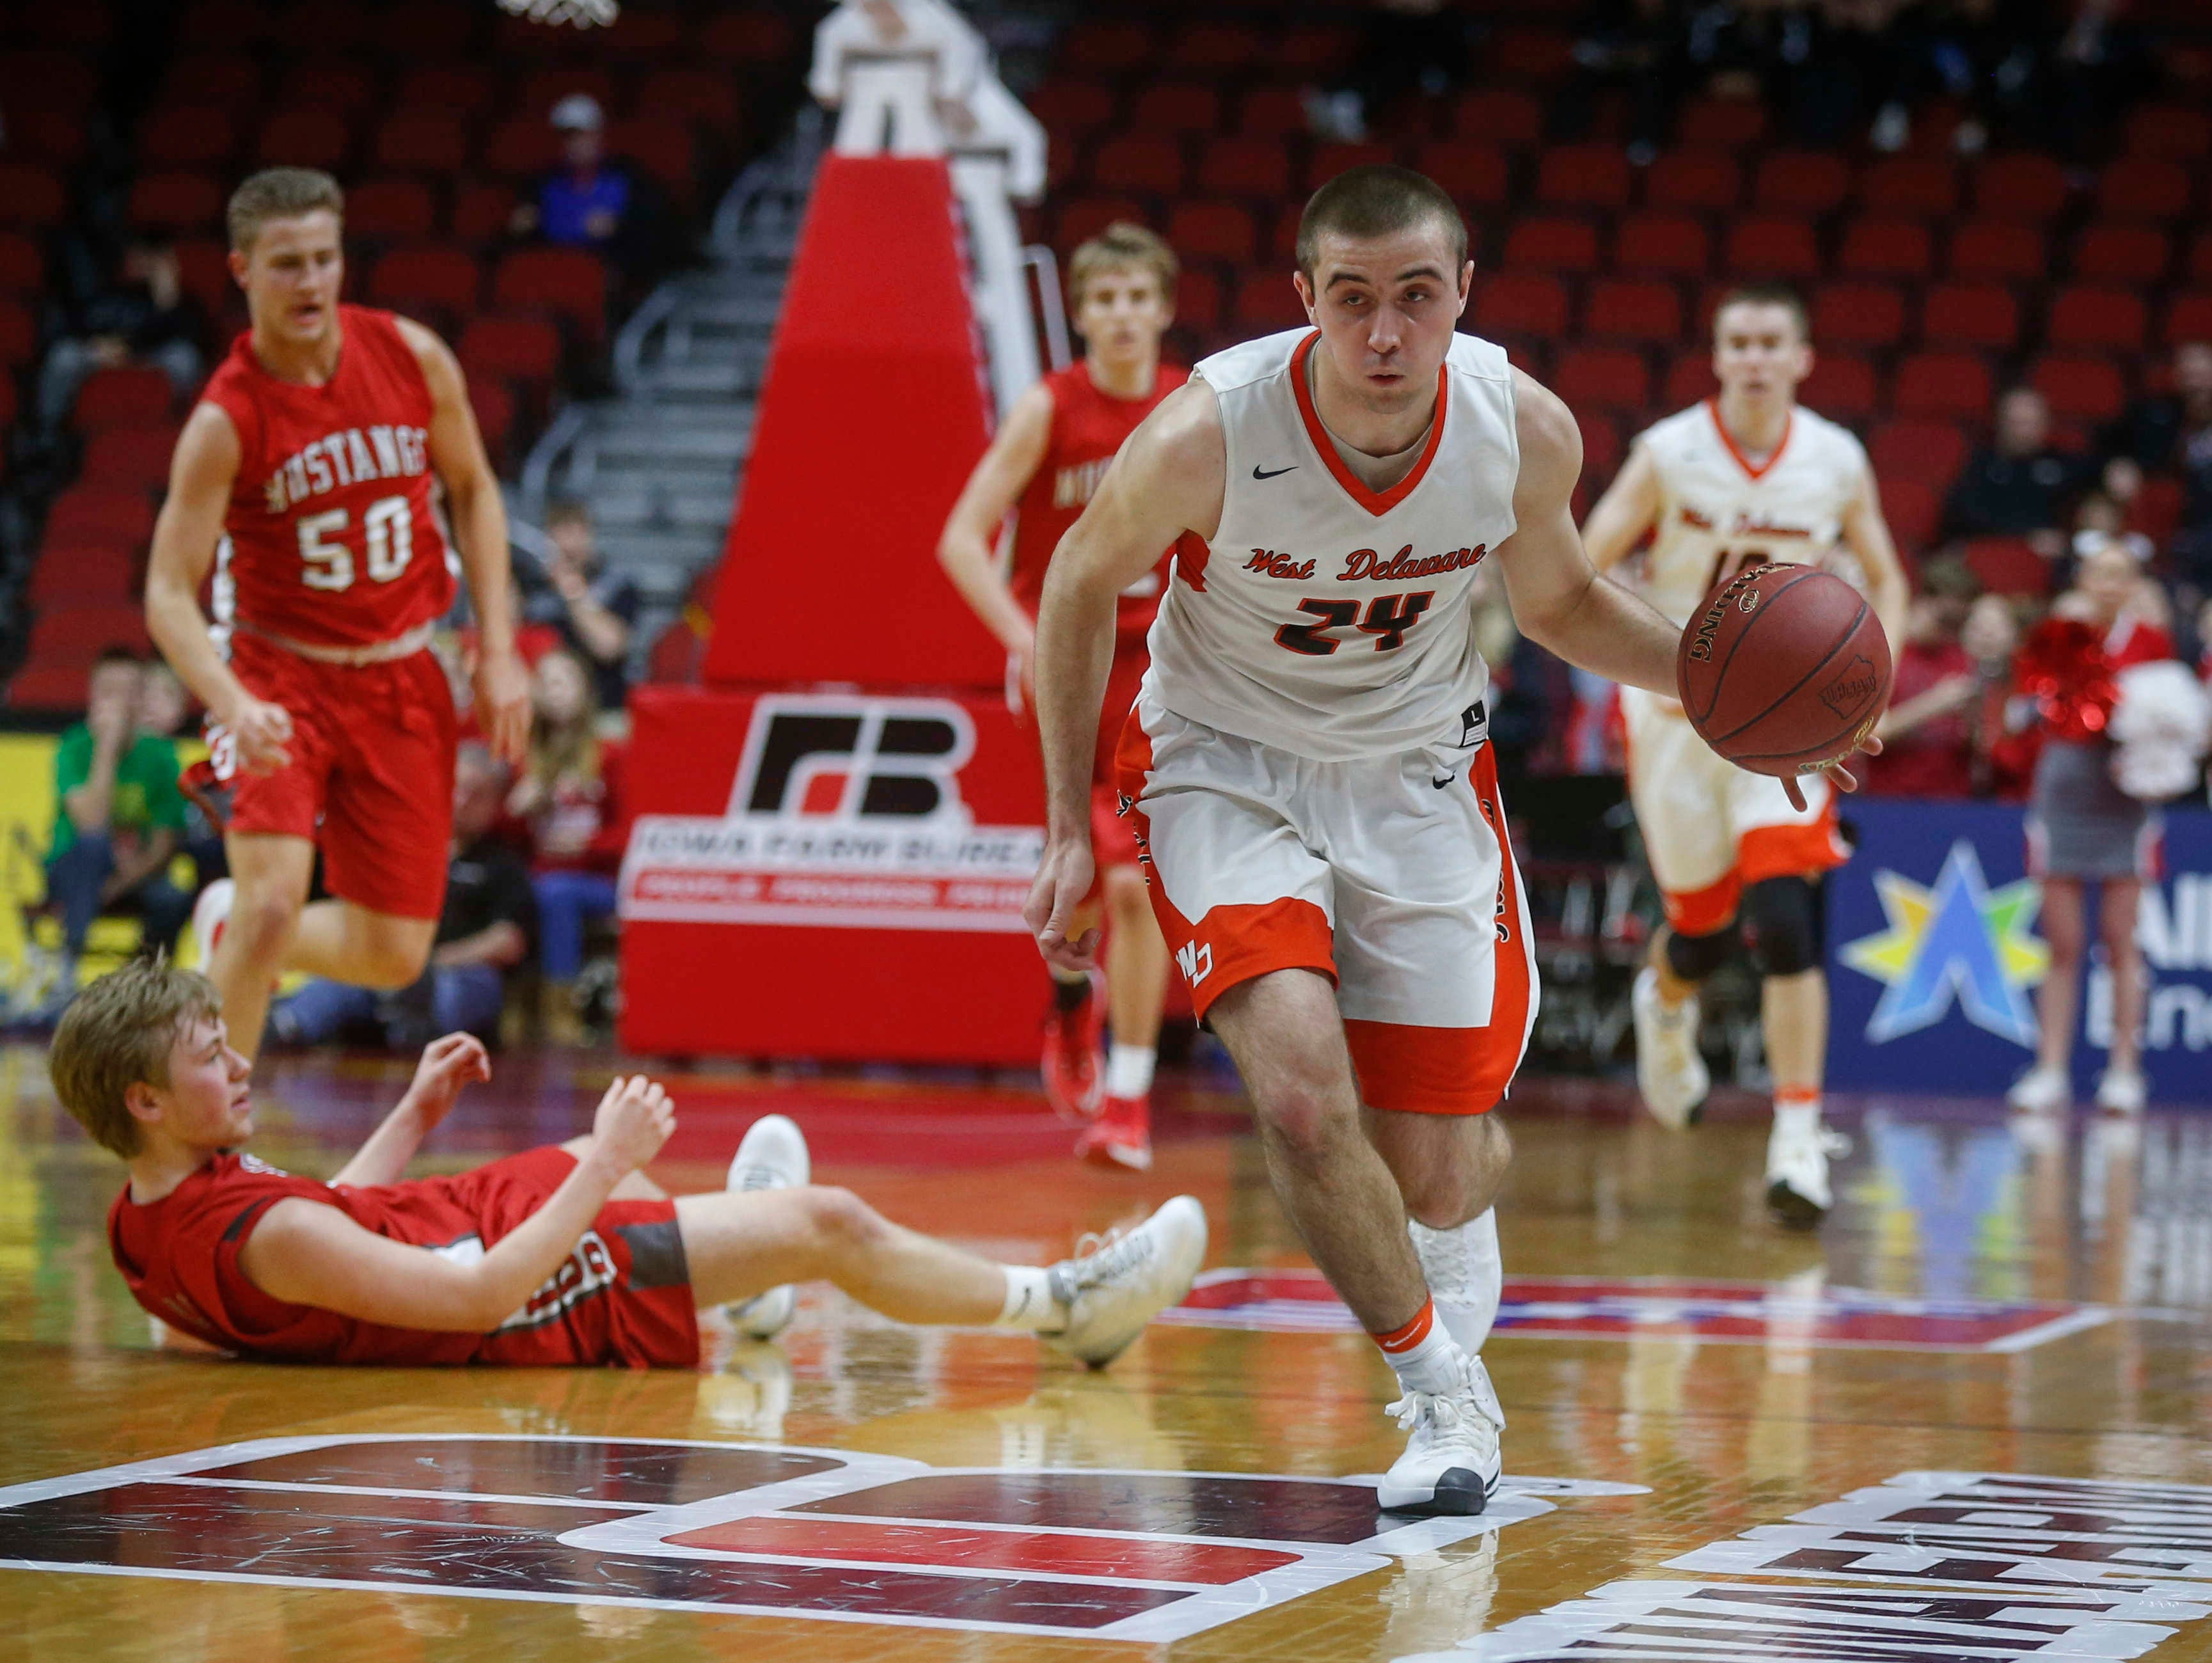 West Delaware sophomore Derek Krogmann scoops up a loose ball against Dallas Center-Grimes during the first round of the Iowa High School state basketball tournament at Wells Fargo Arena in Des Moines on Tuesday, March 7, 2017.